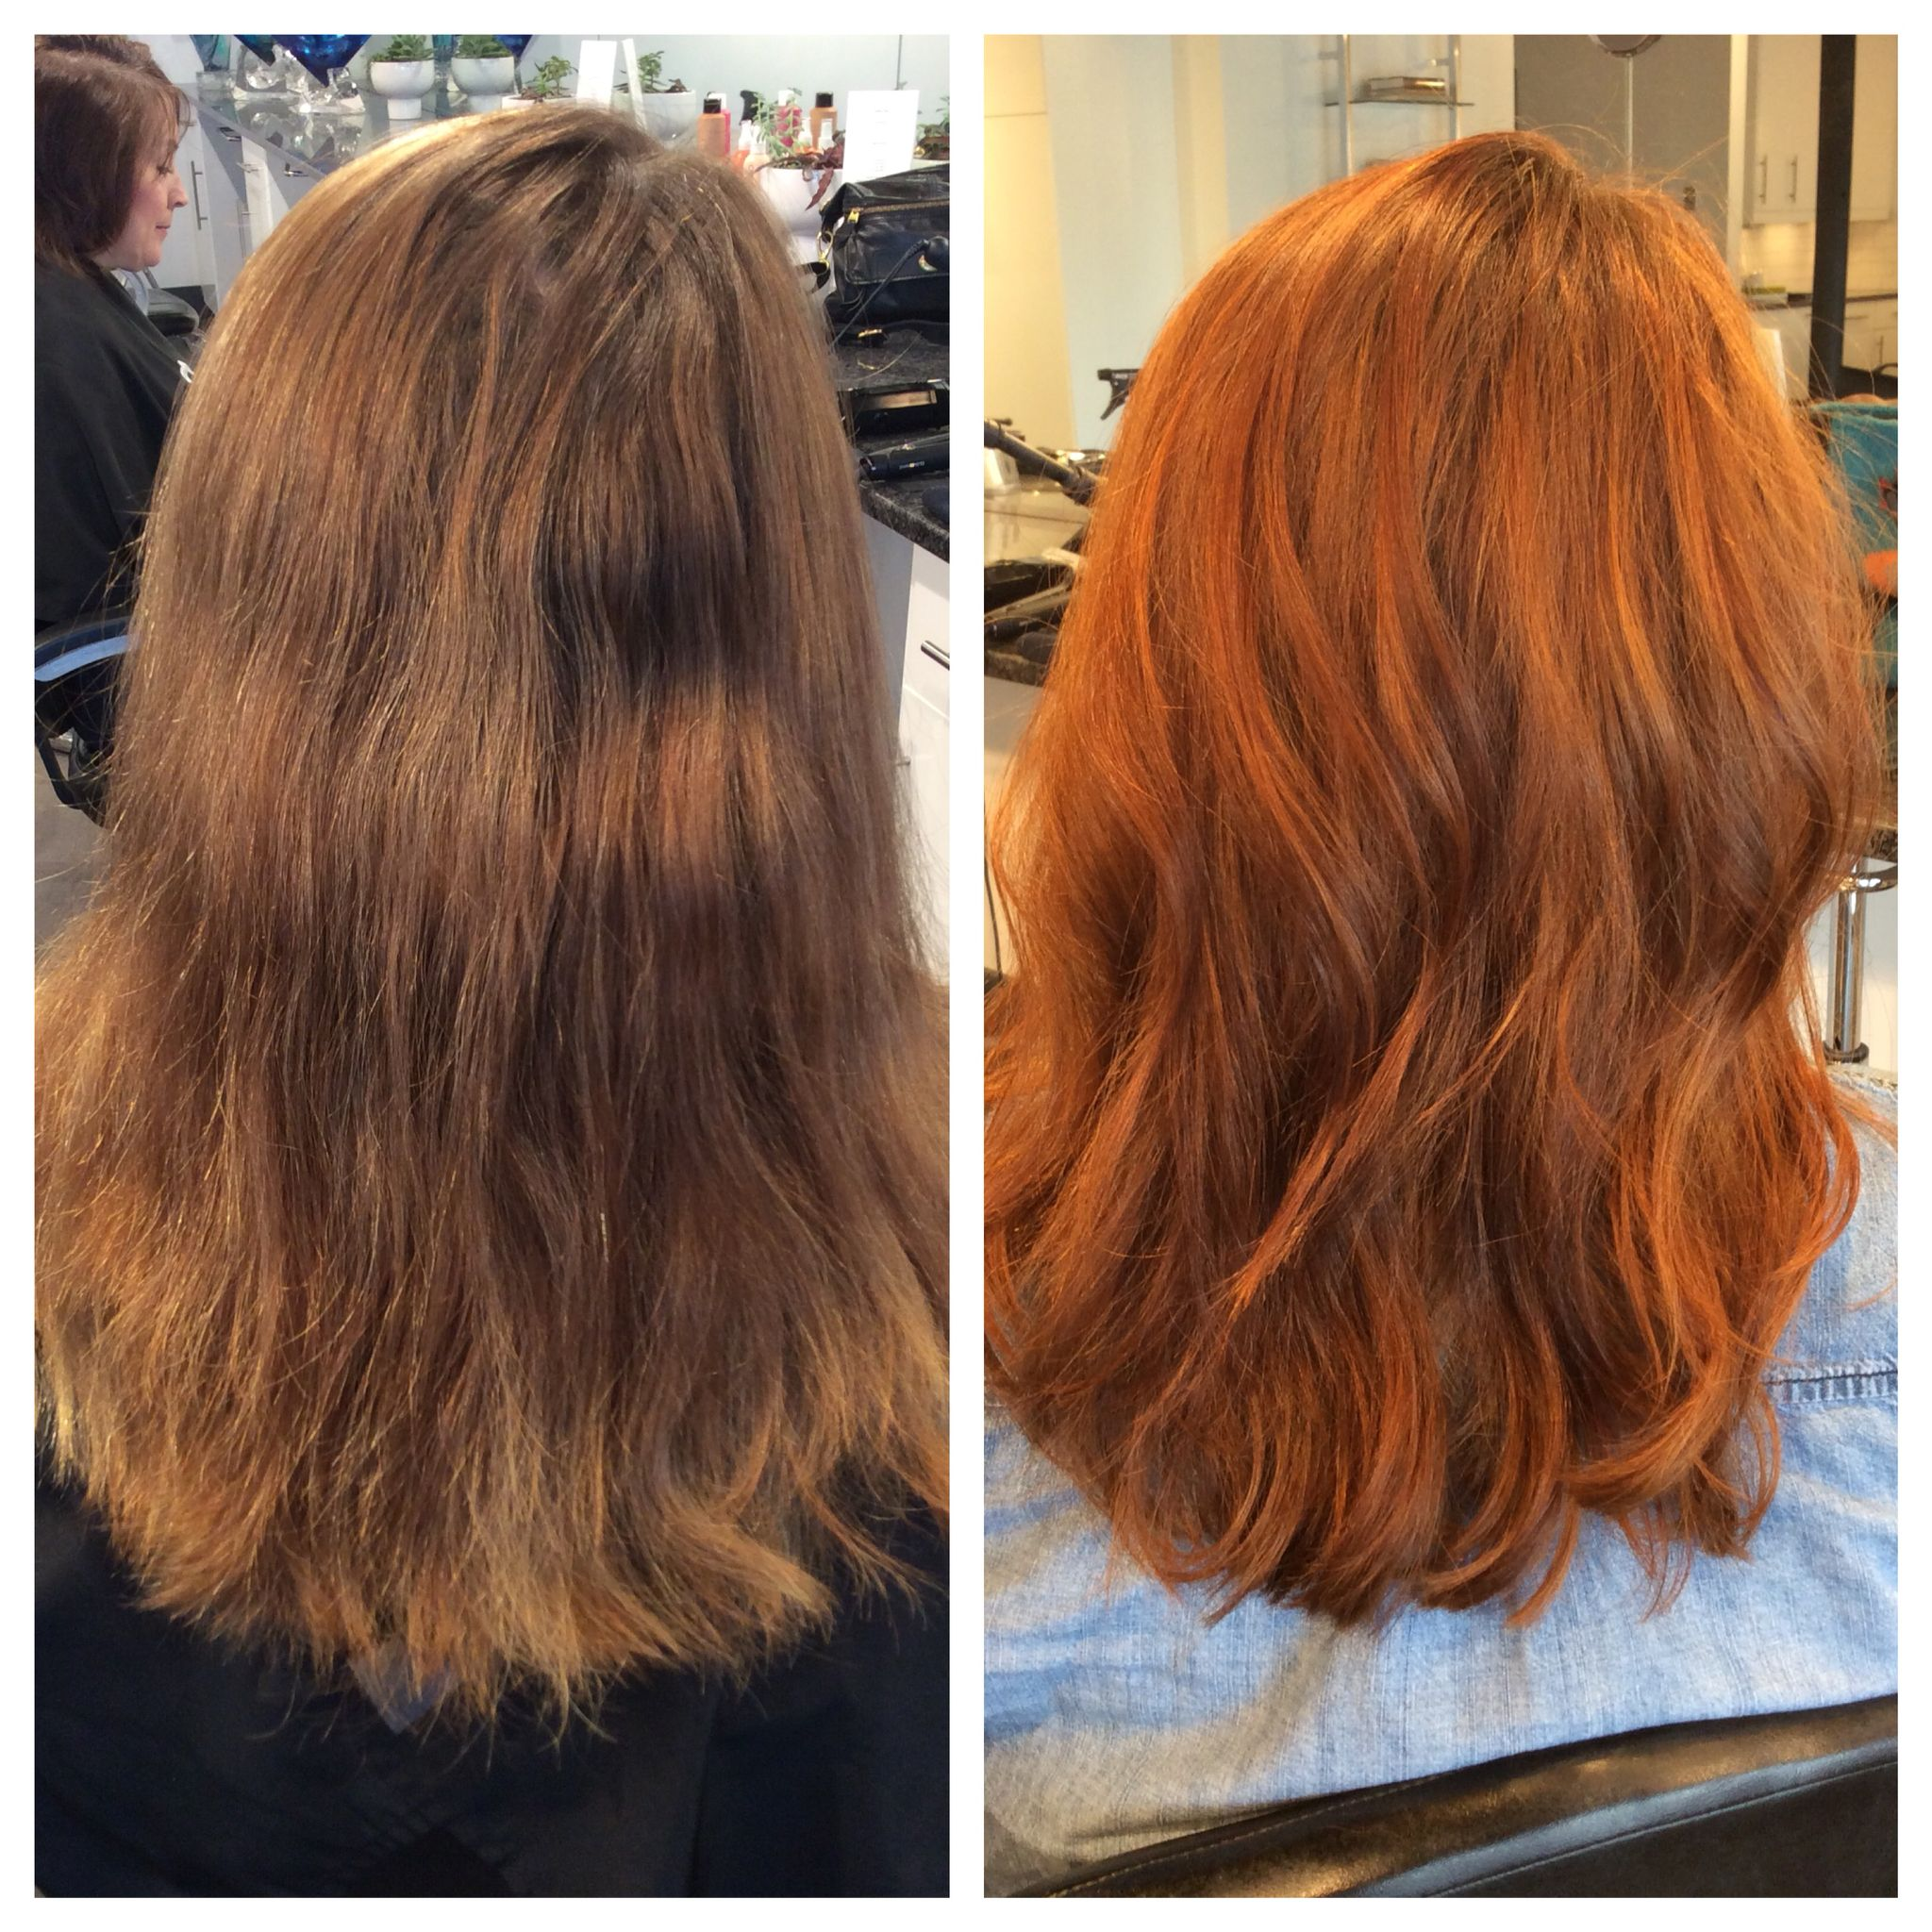 Hair Color Transformation From Faded Light Brown To Vibrant